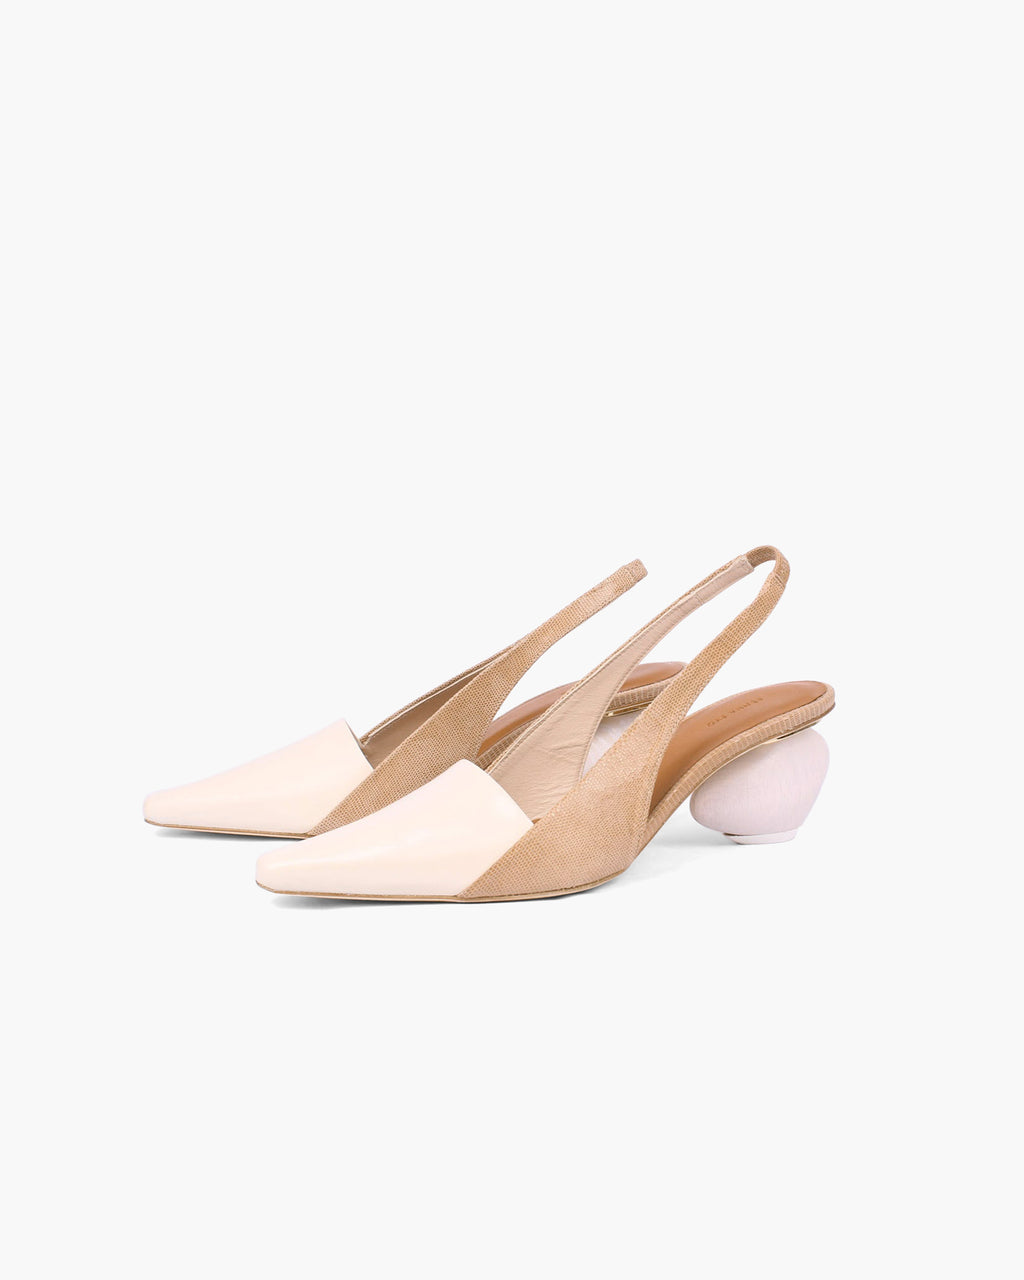 Taylor Slingbacks Leather Lizard White and Taupe with White Wood Heels